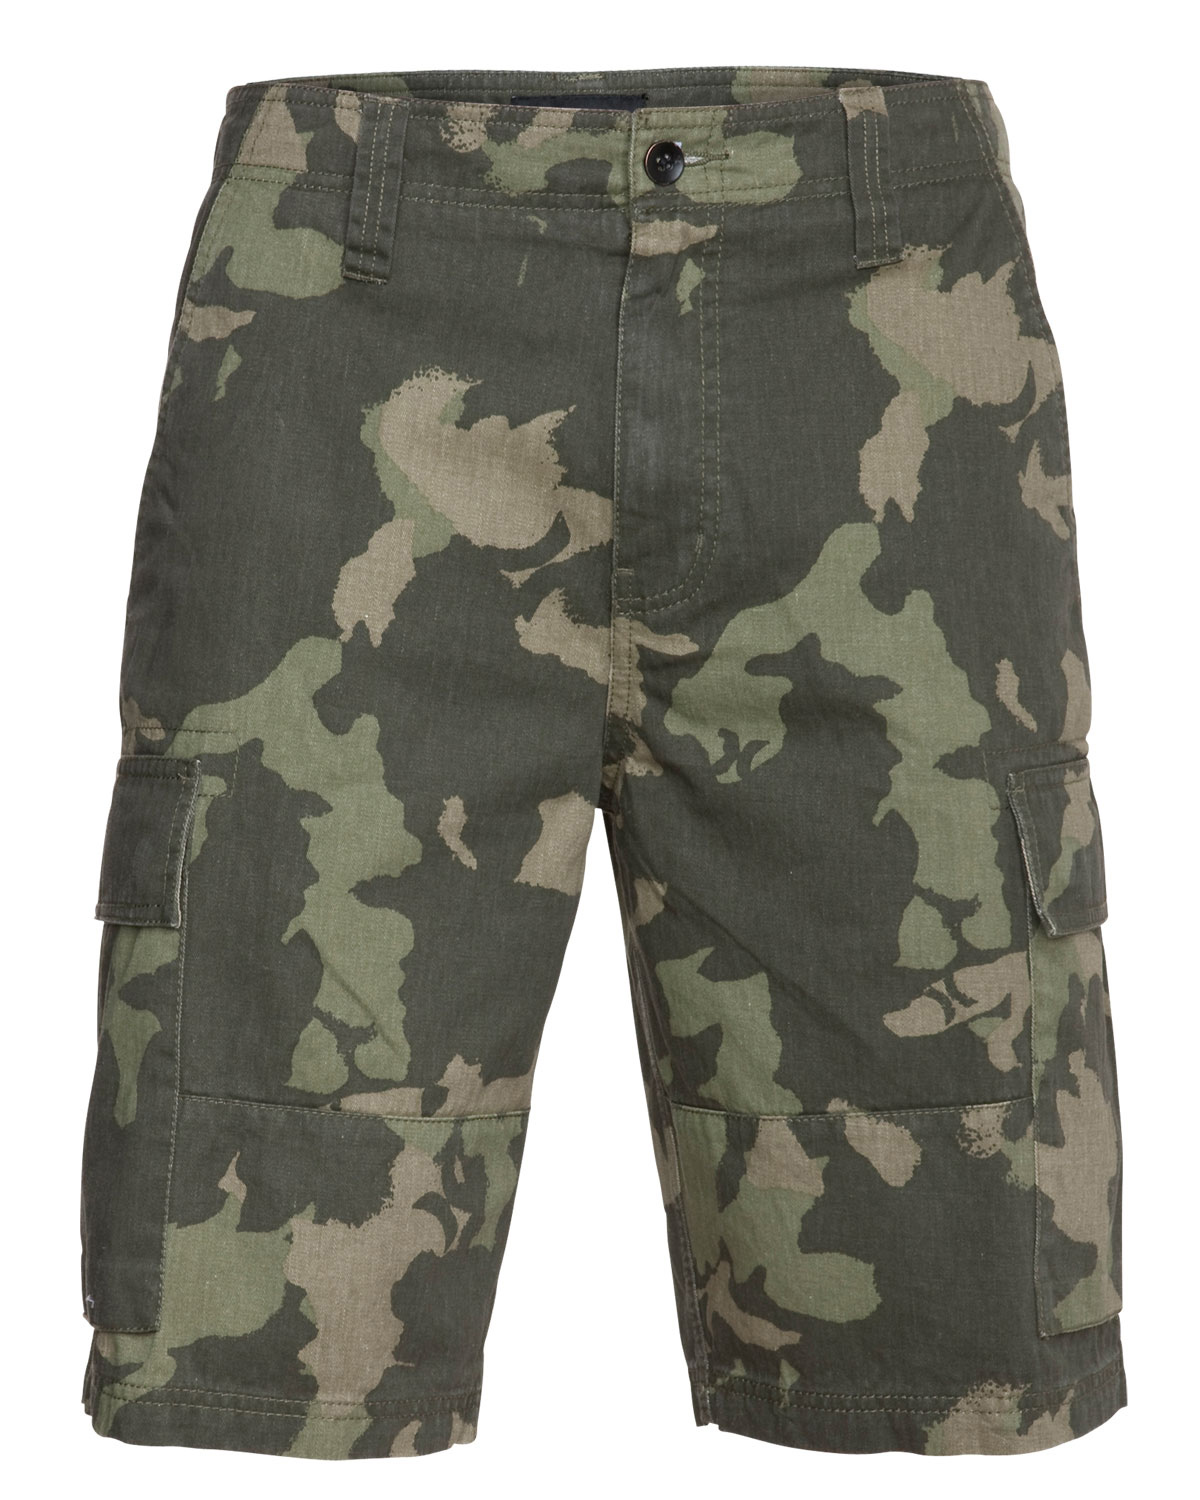 Surf Key Features of the Hurley Commander Shorts: Cargo fit 100 cotton Cargo pockets with hidden snaps Military details Woven label branding and self applique icon at waistband - $45.00